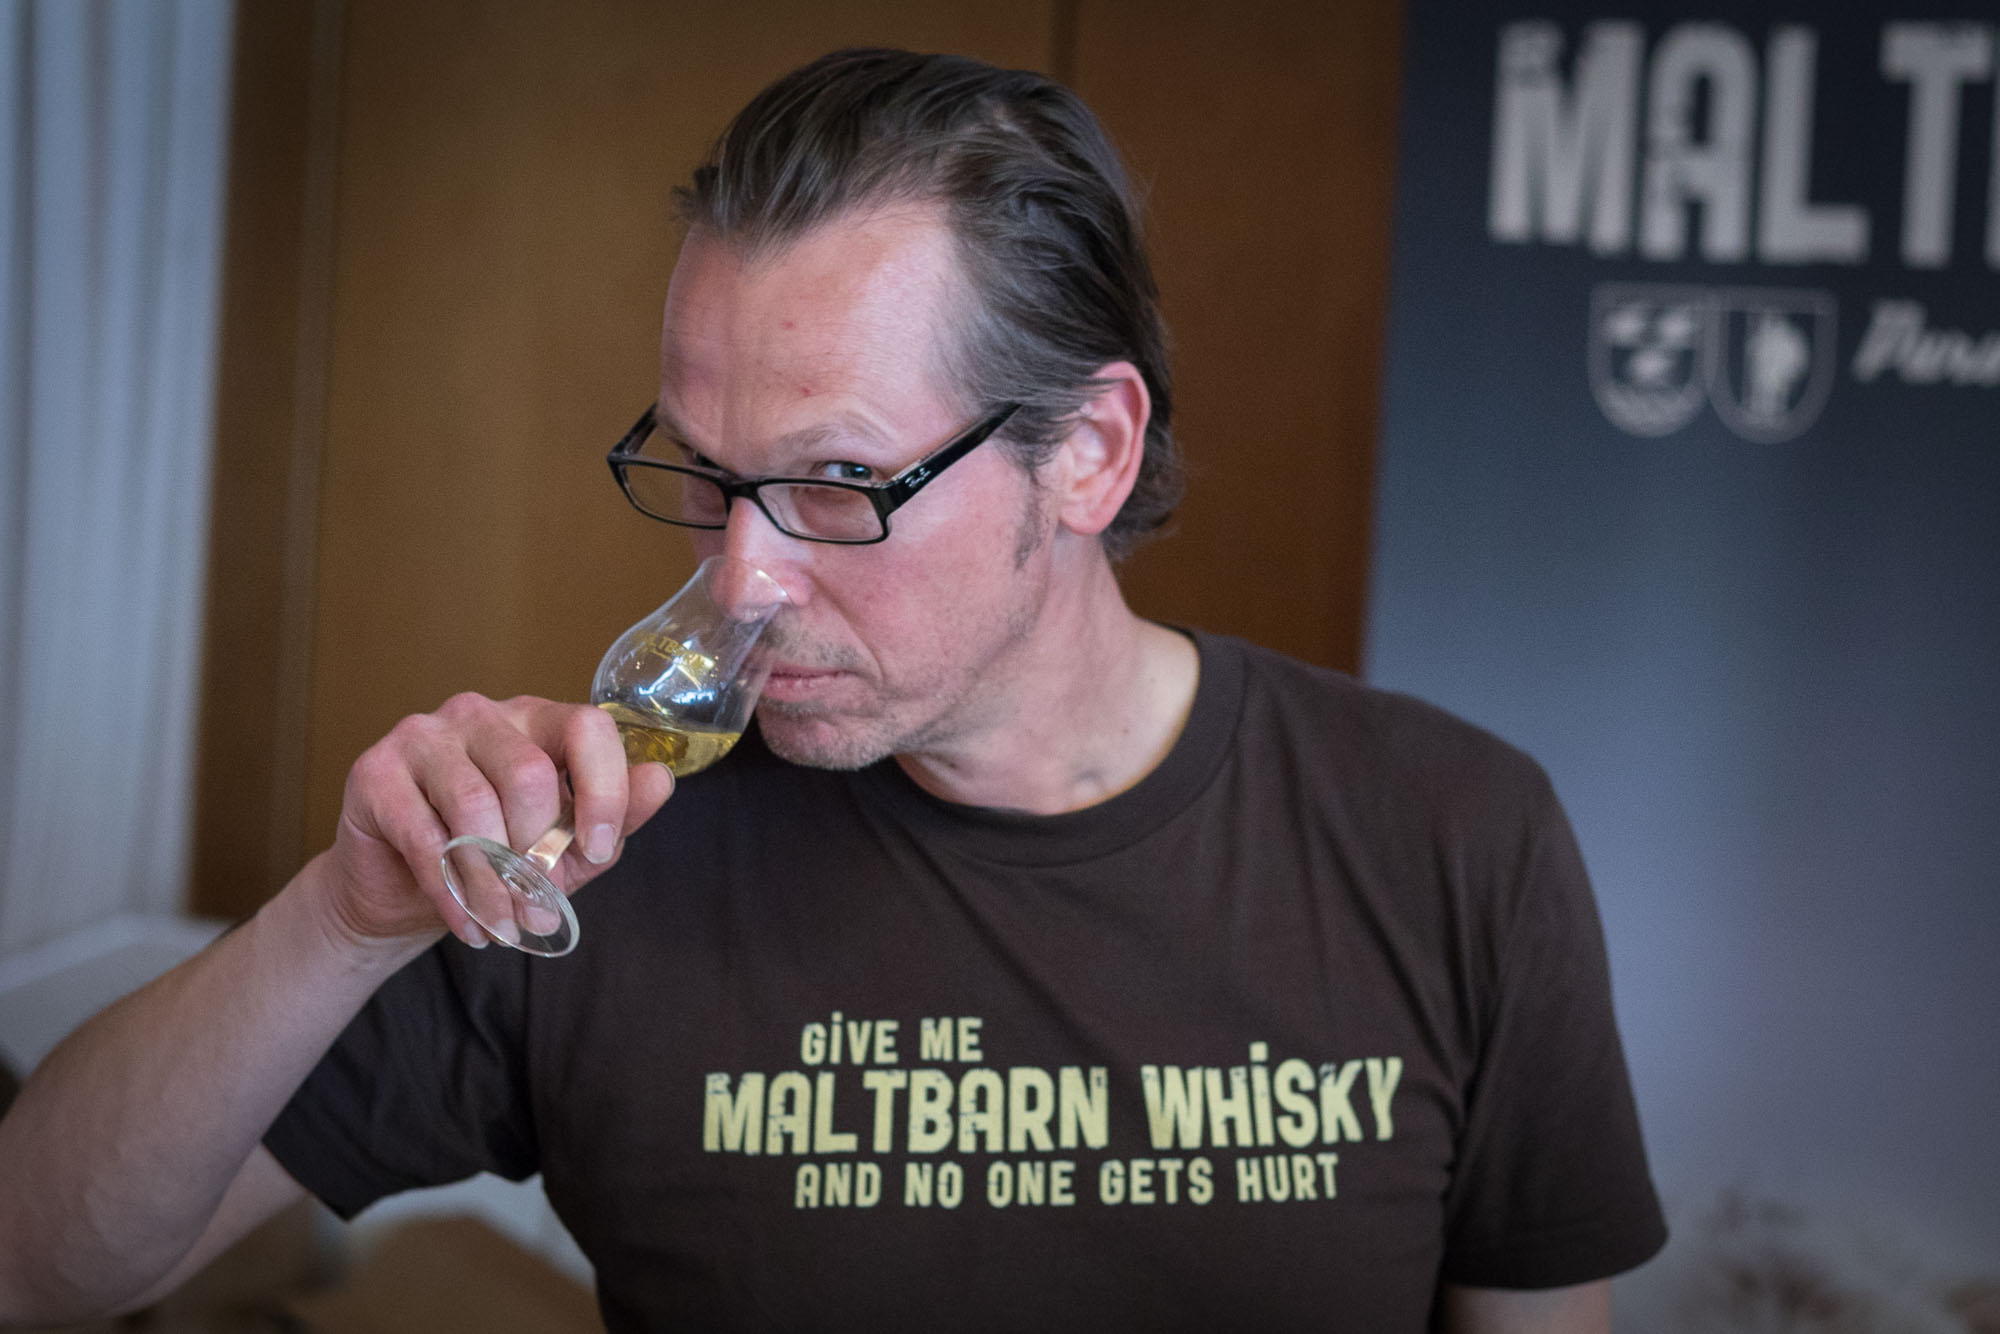 Martin. Give me Maltbarn whisky and no one gets hurt.